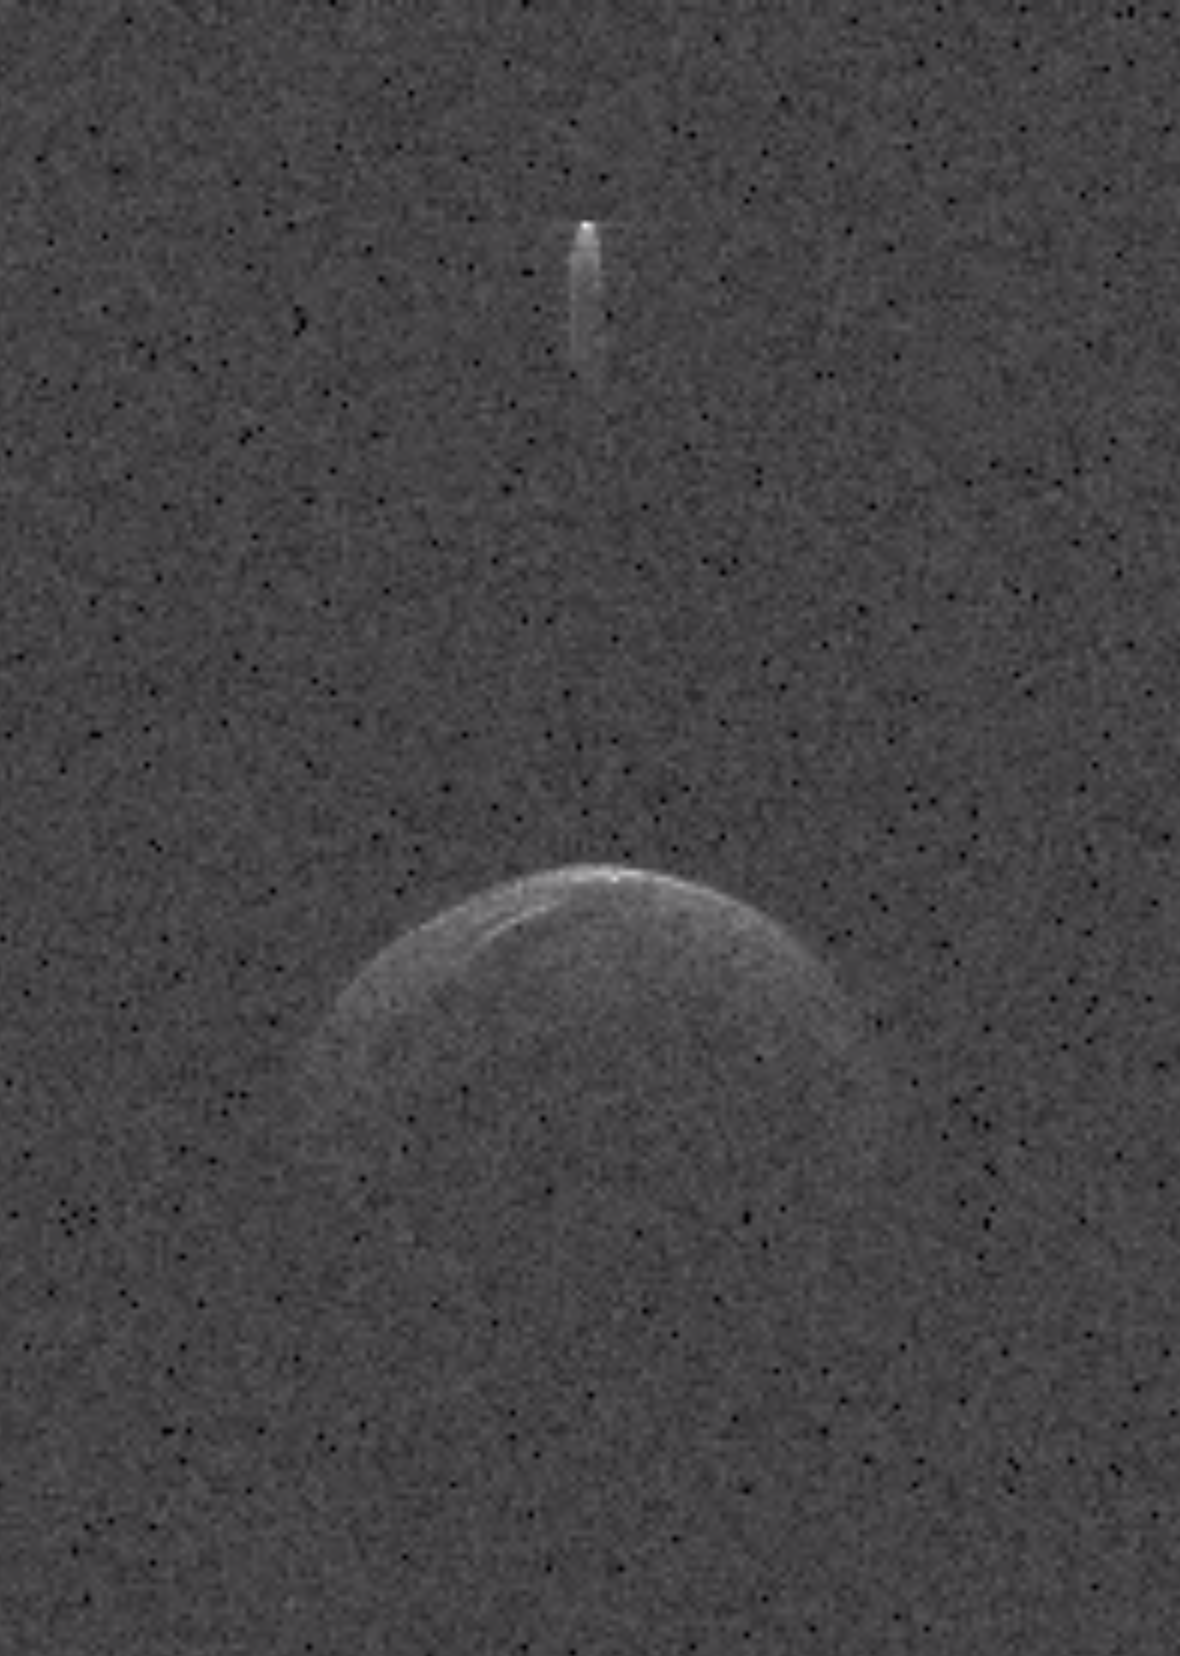 Passing by Earth this weekend: Two space rocks, one 'potentially hazardous' asteroid